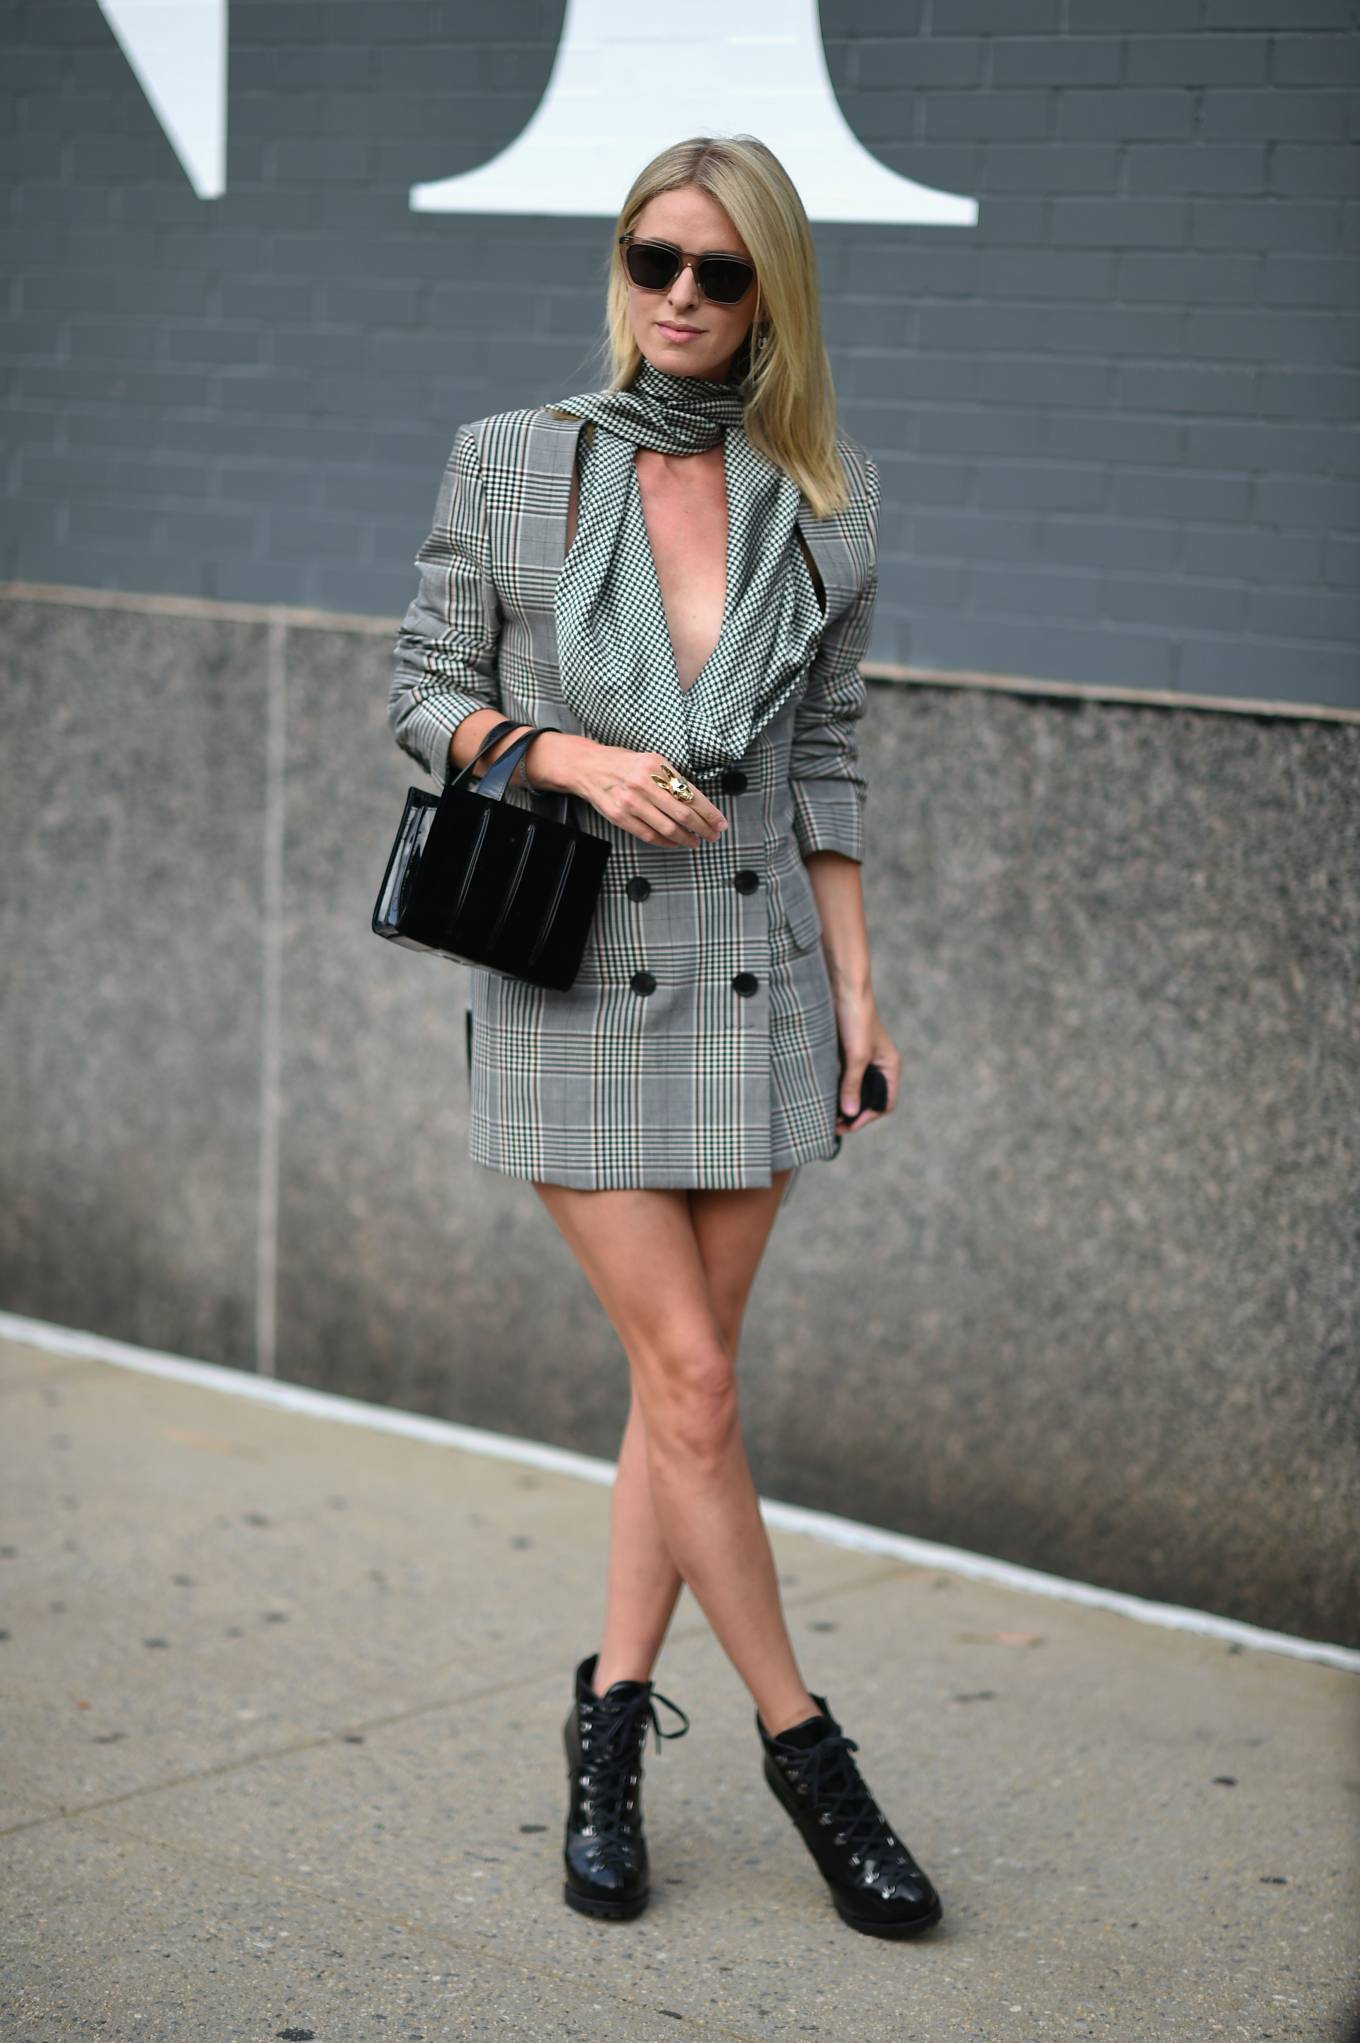 Nicky Hilton 2020 : Nicky Hilton – New York Fashion Week – Monse Fall-Winter 2020 Presentation-21